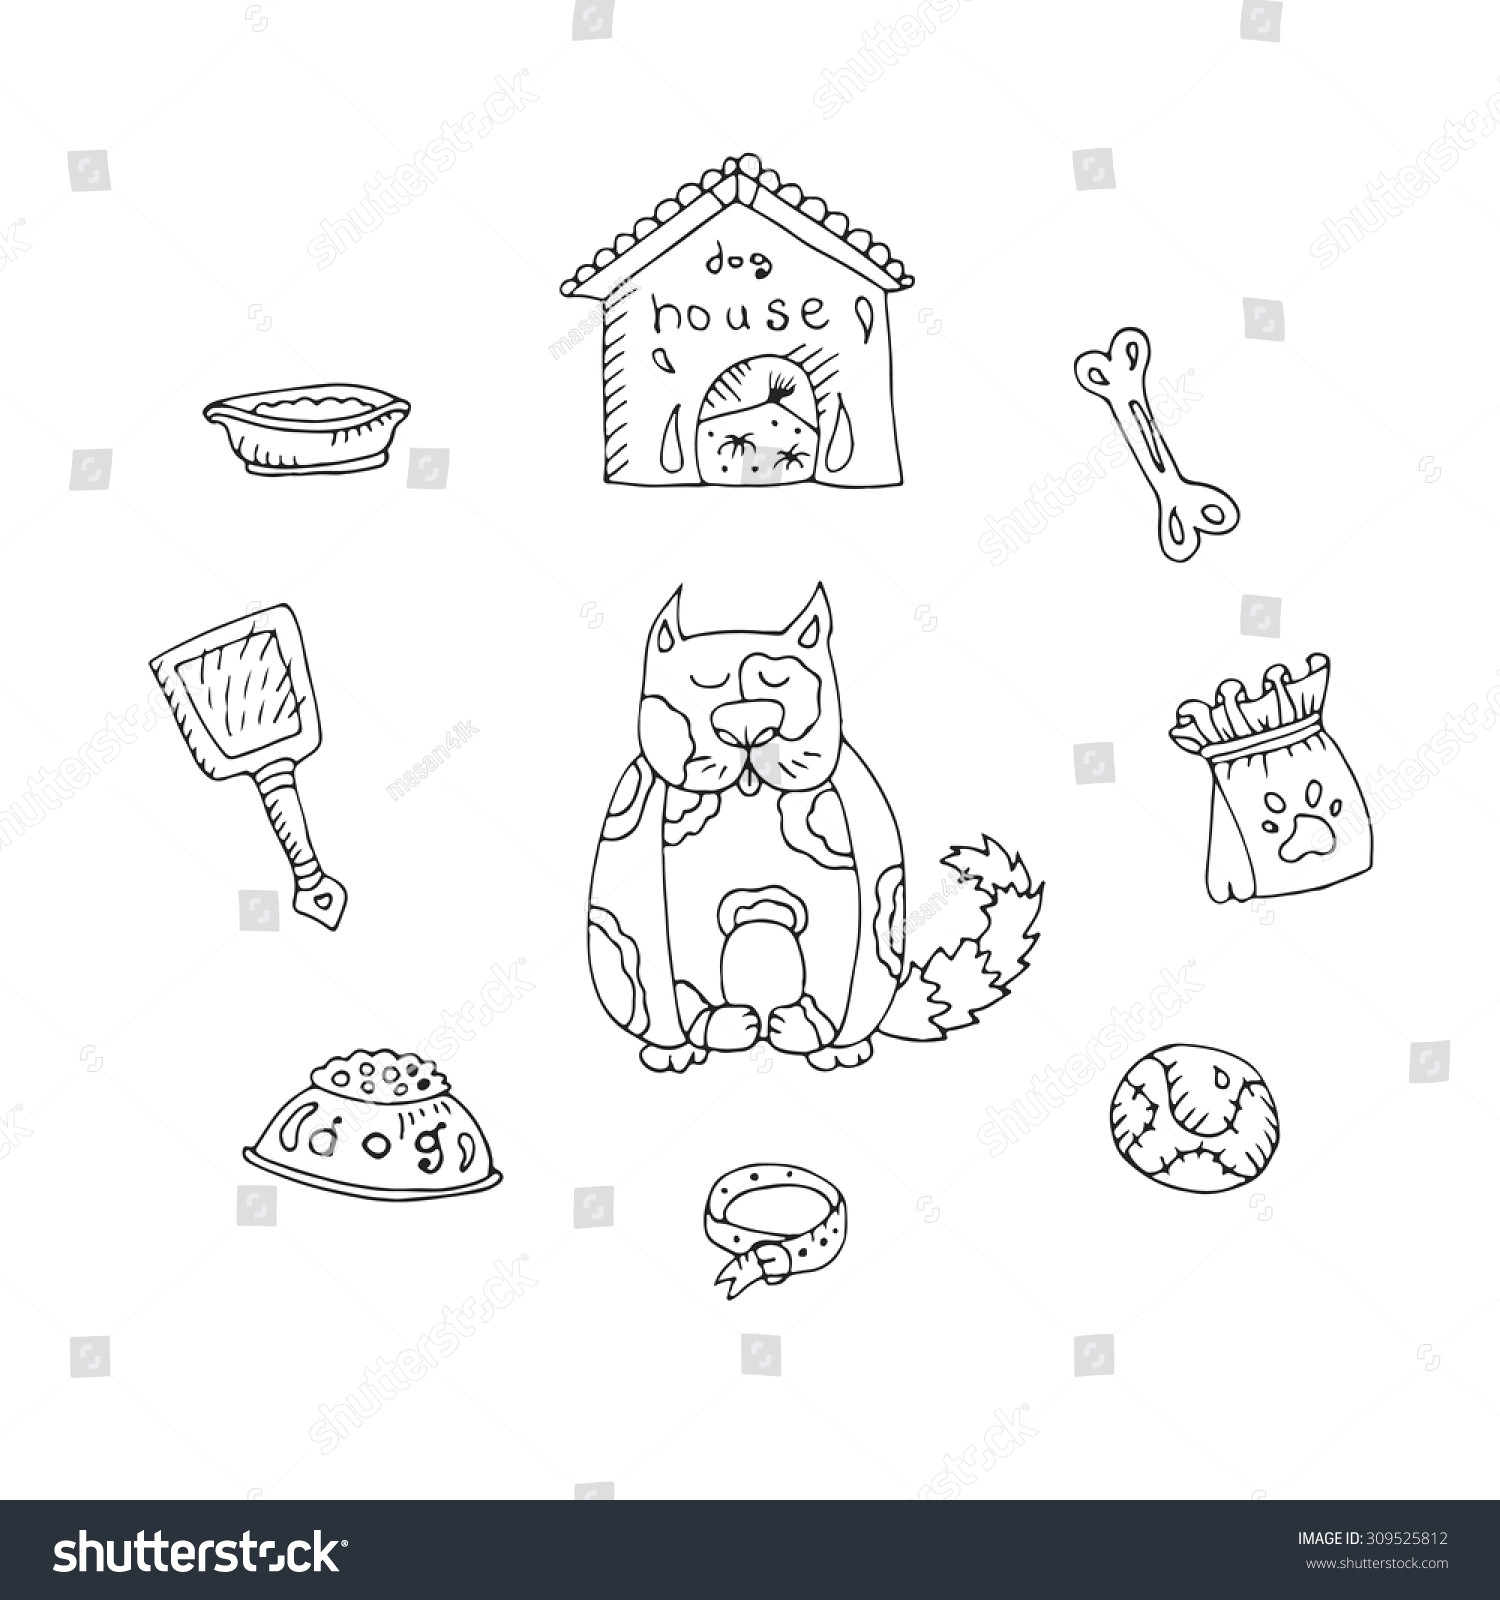 vector set for dogs various objects dog house ball bone bowl